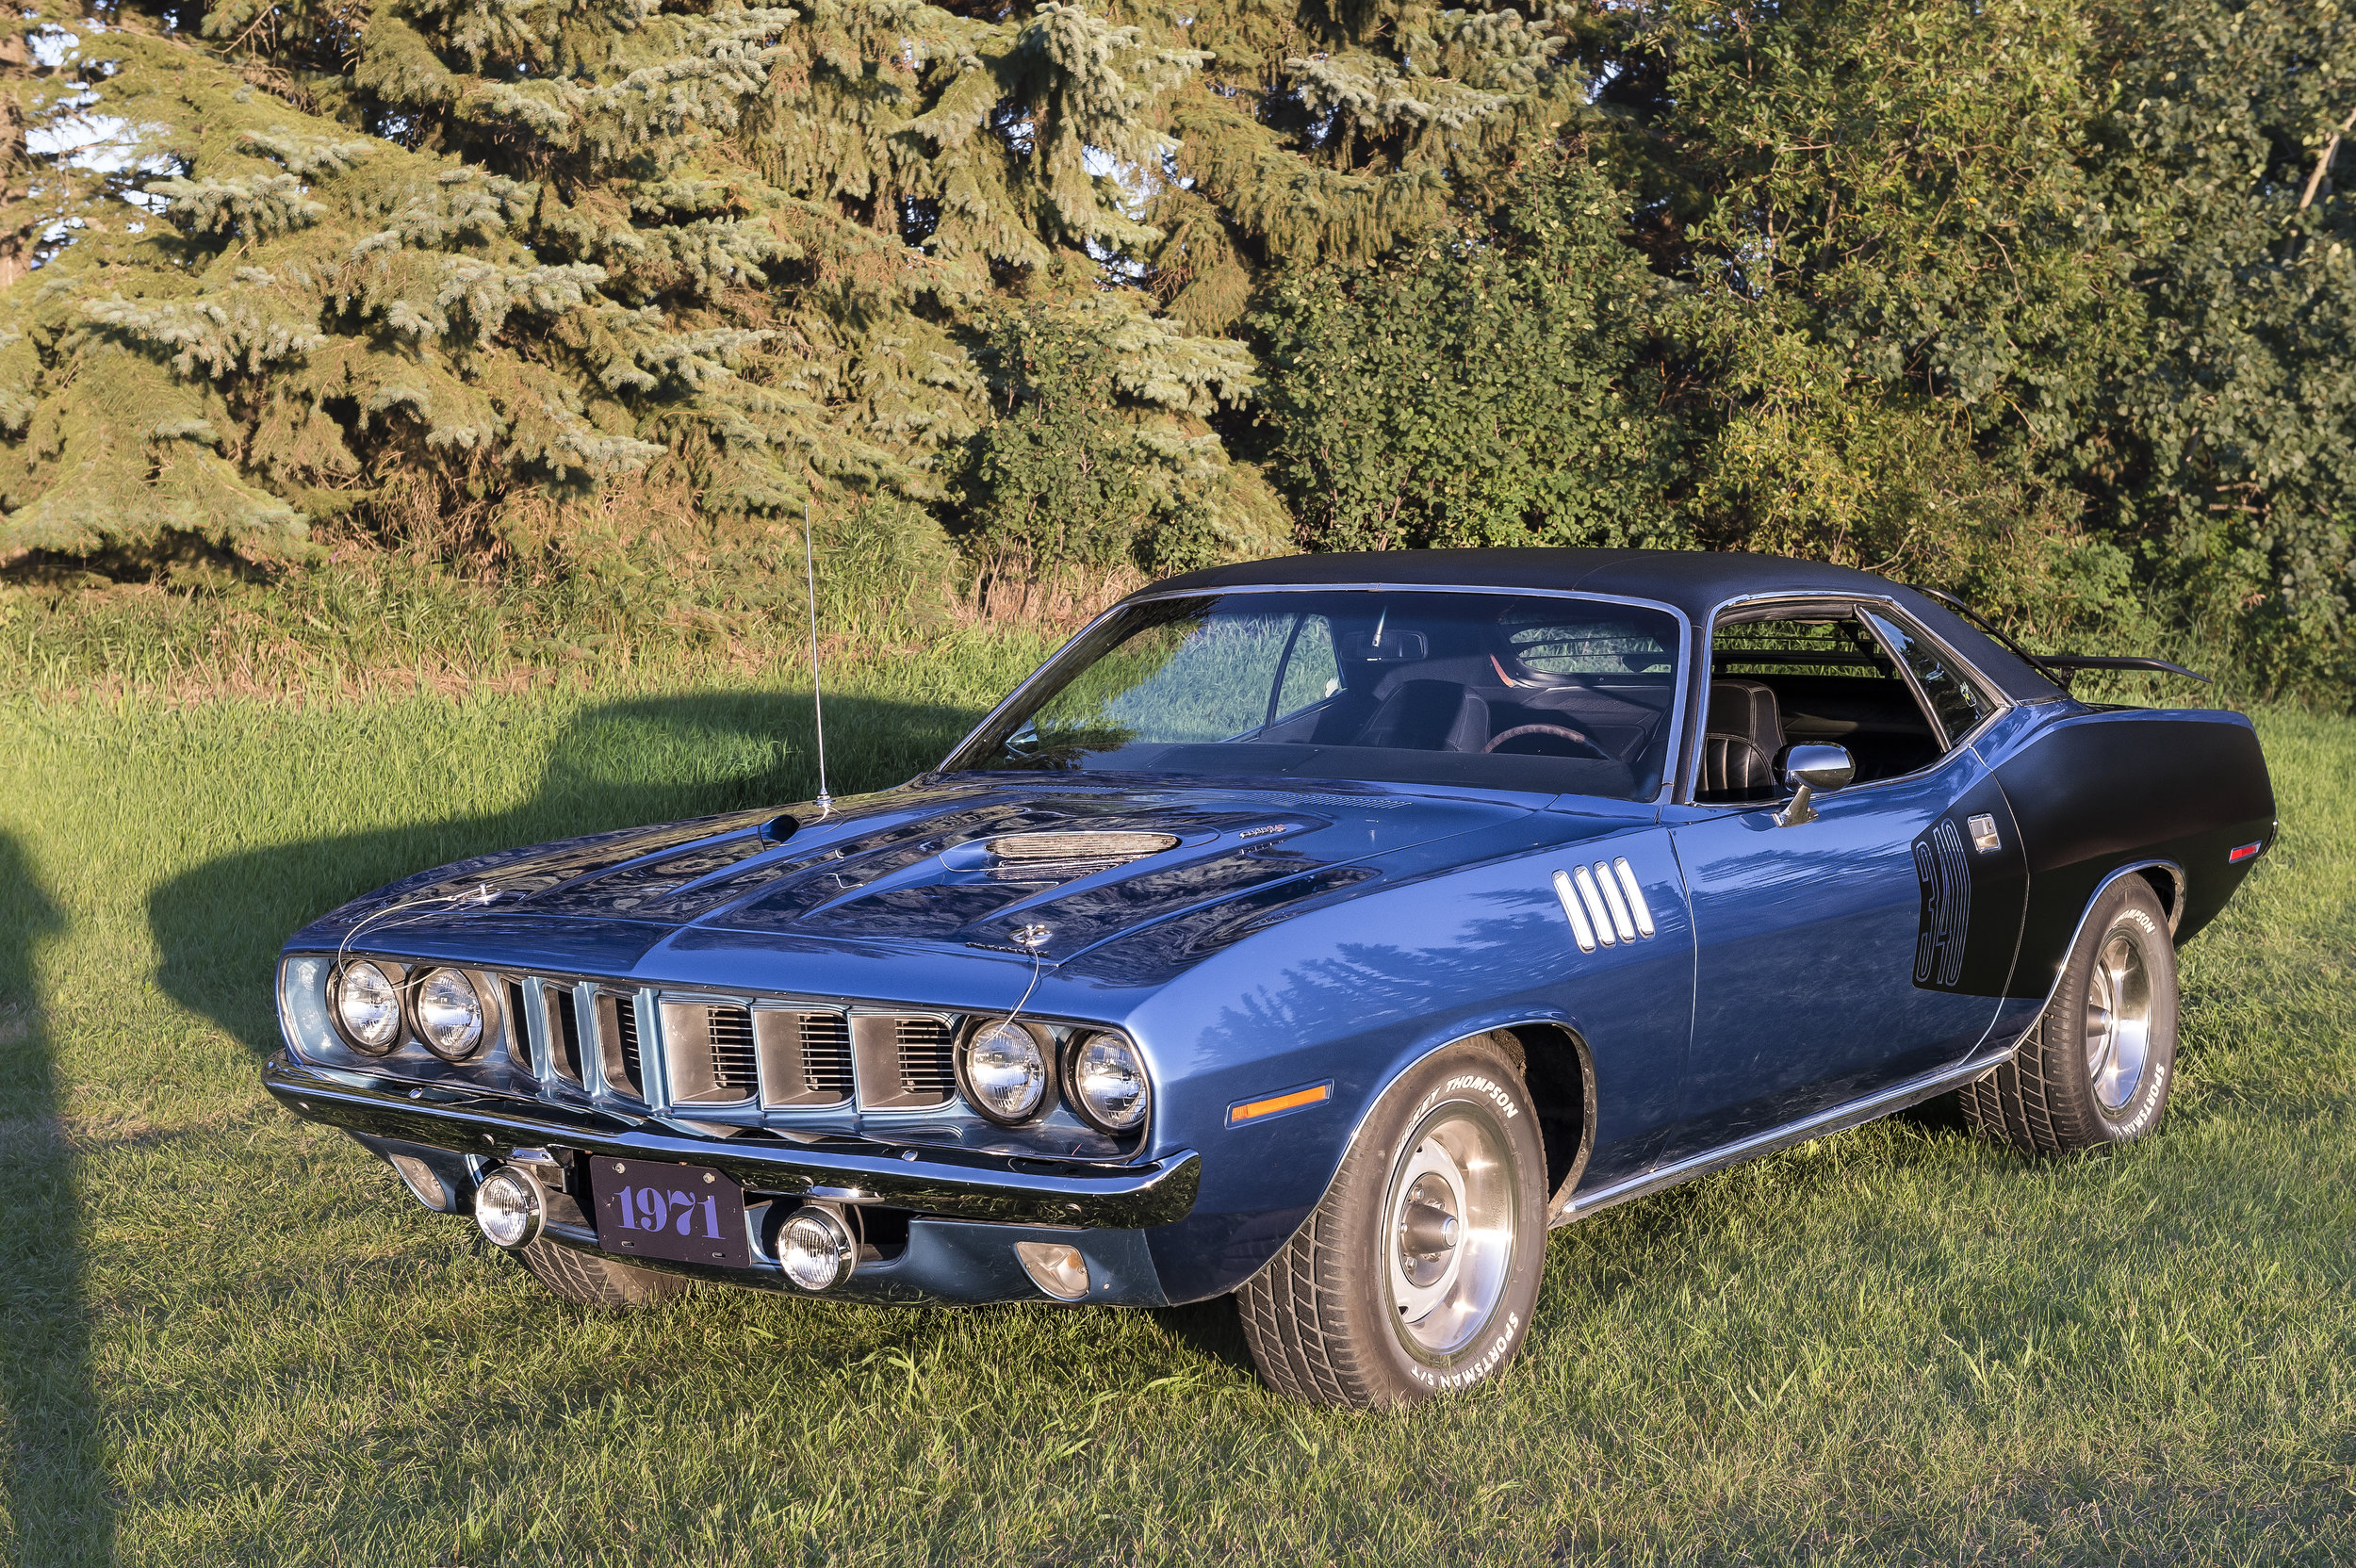 """1971 Plymouth Cuda   340 Engine with a 4 speed standard transmission. 8-3/4""""Rear Diff.This car is locally owned and driven. You will see it and more at Just Kruzin Kruz nights"""